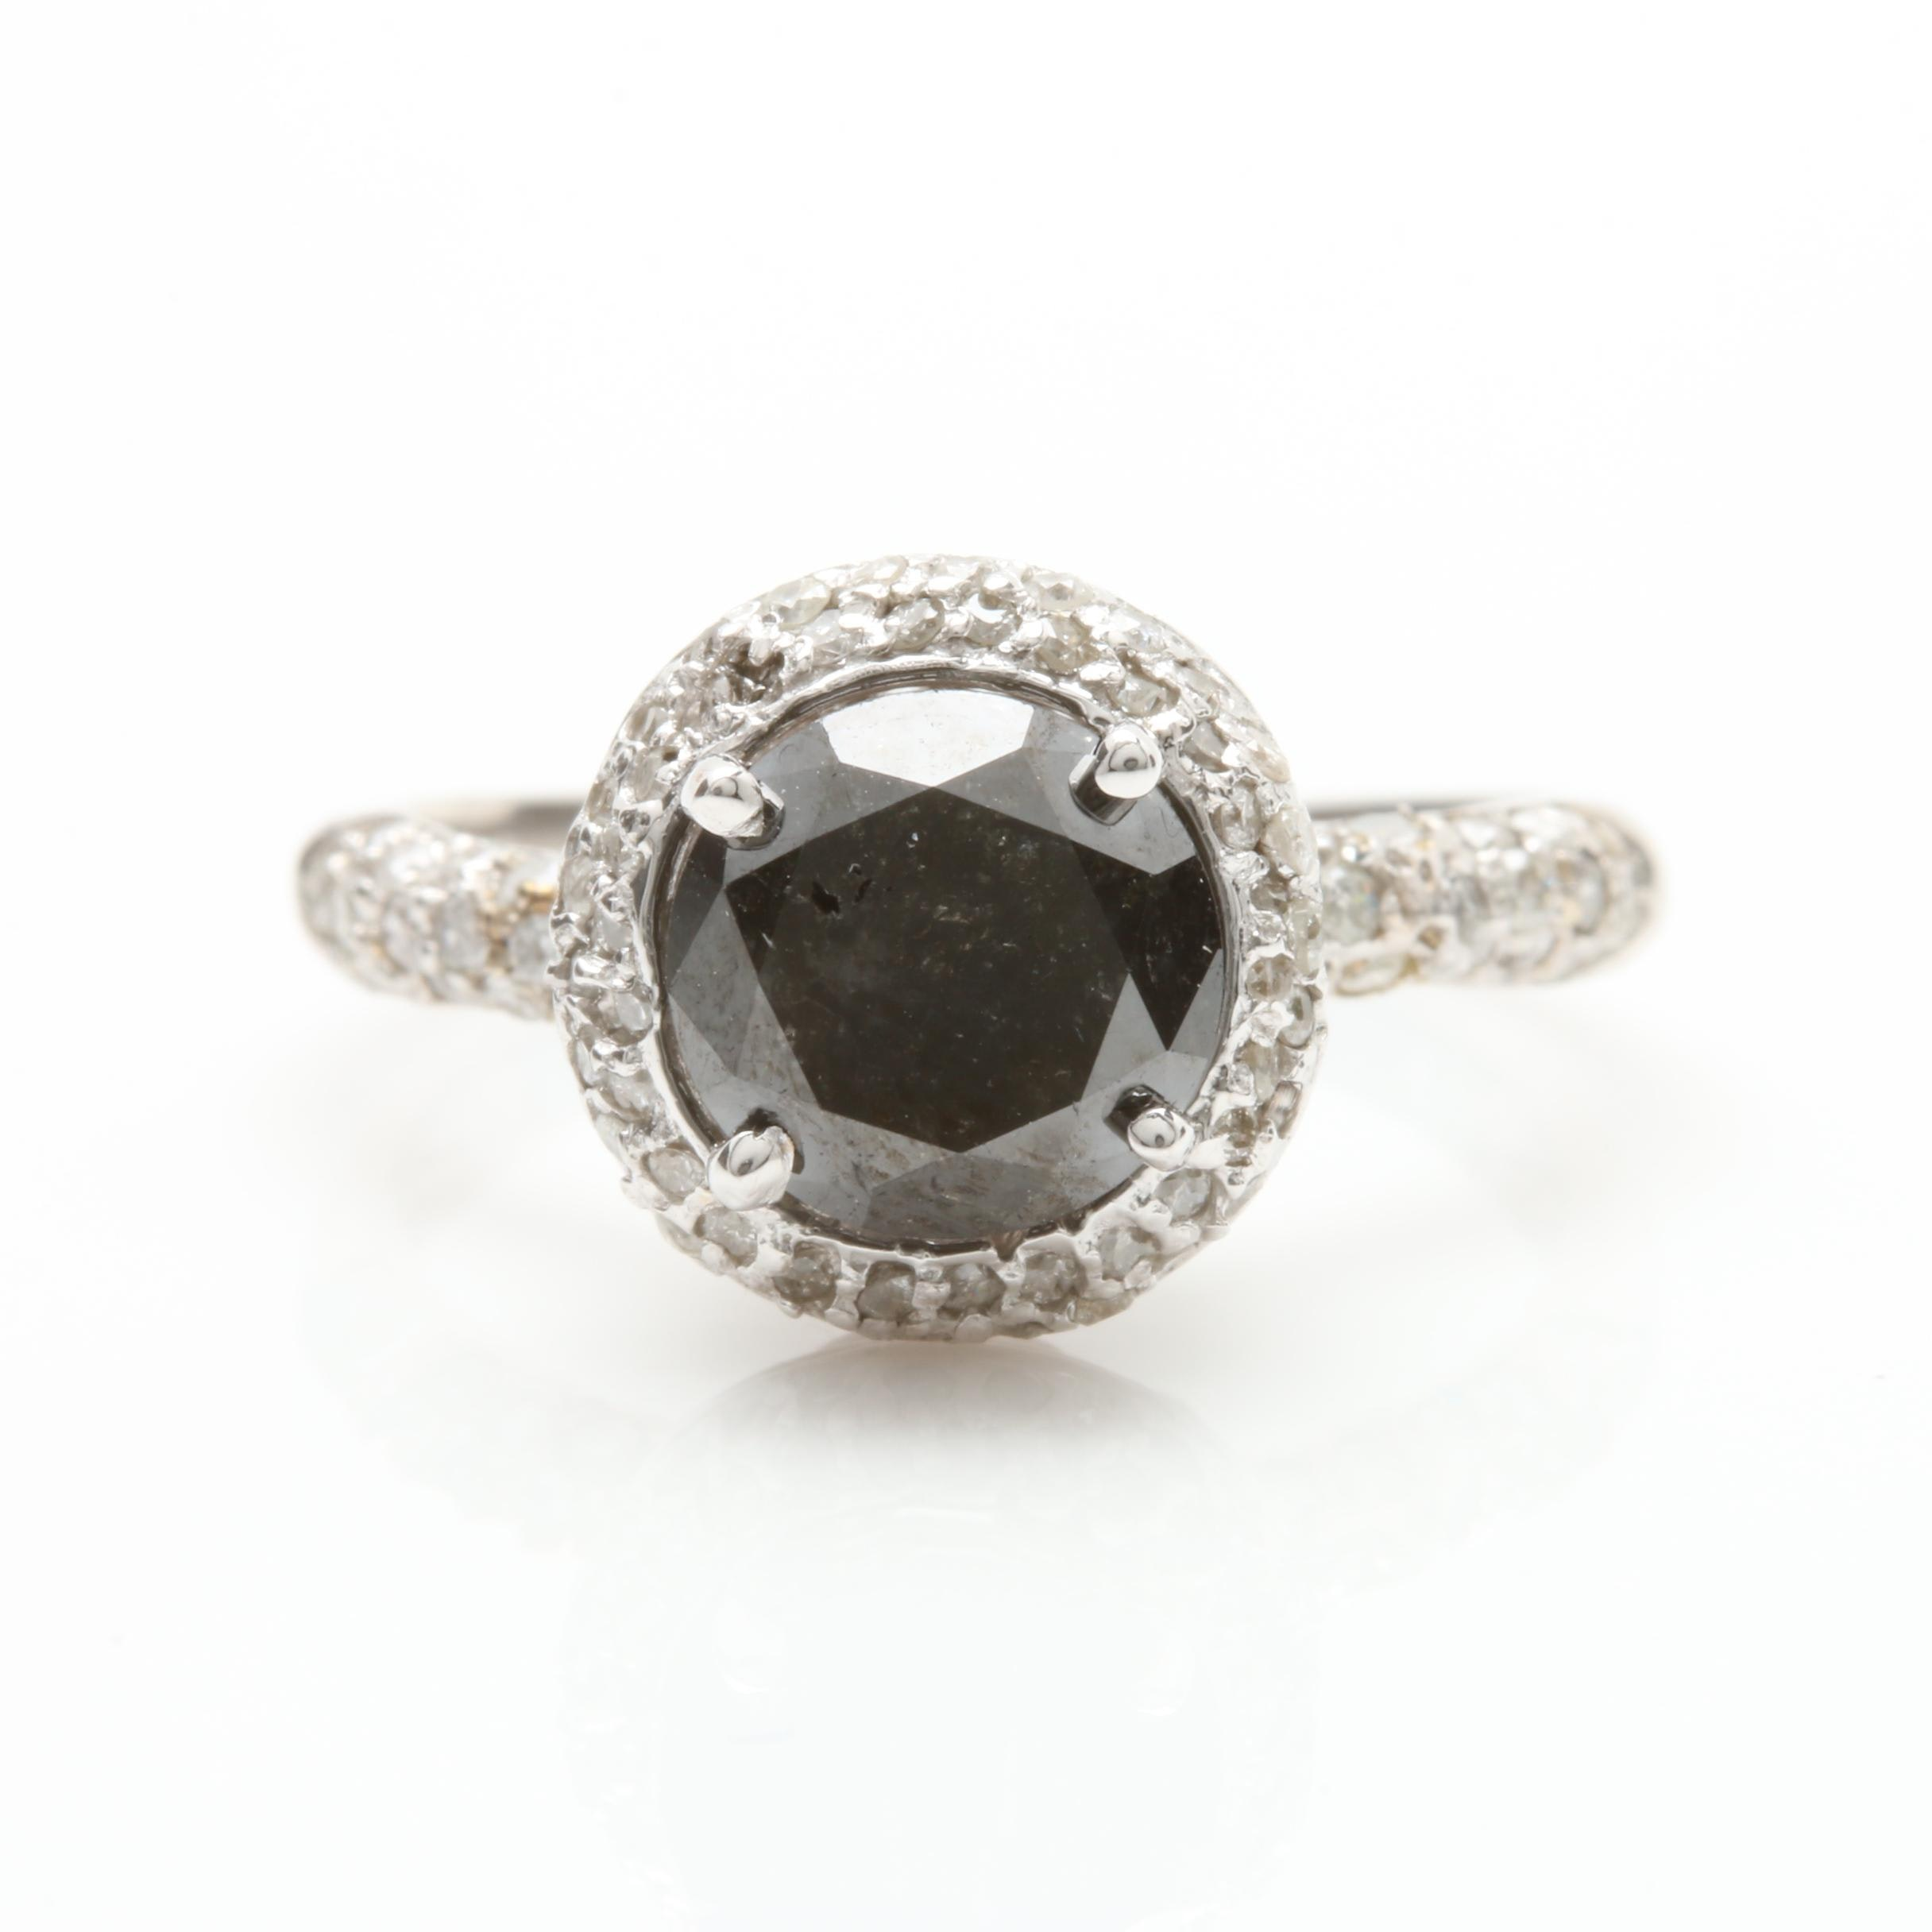 14K White Gold 2.22 CTW Black Diamond Ring with Diamond Accents